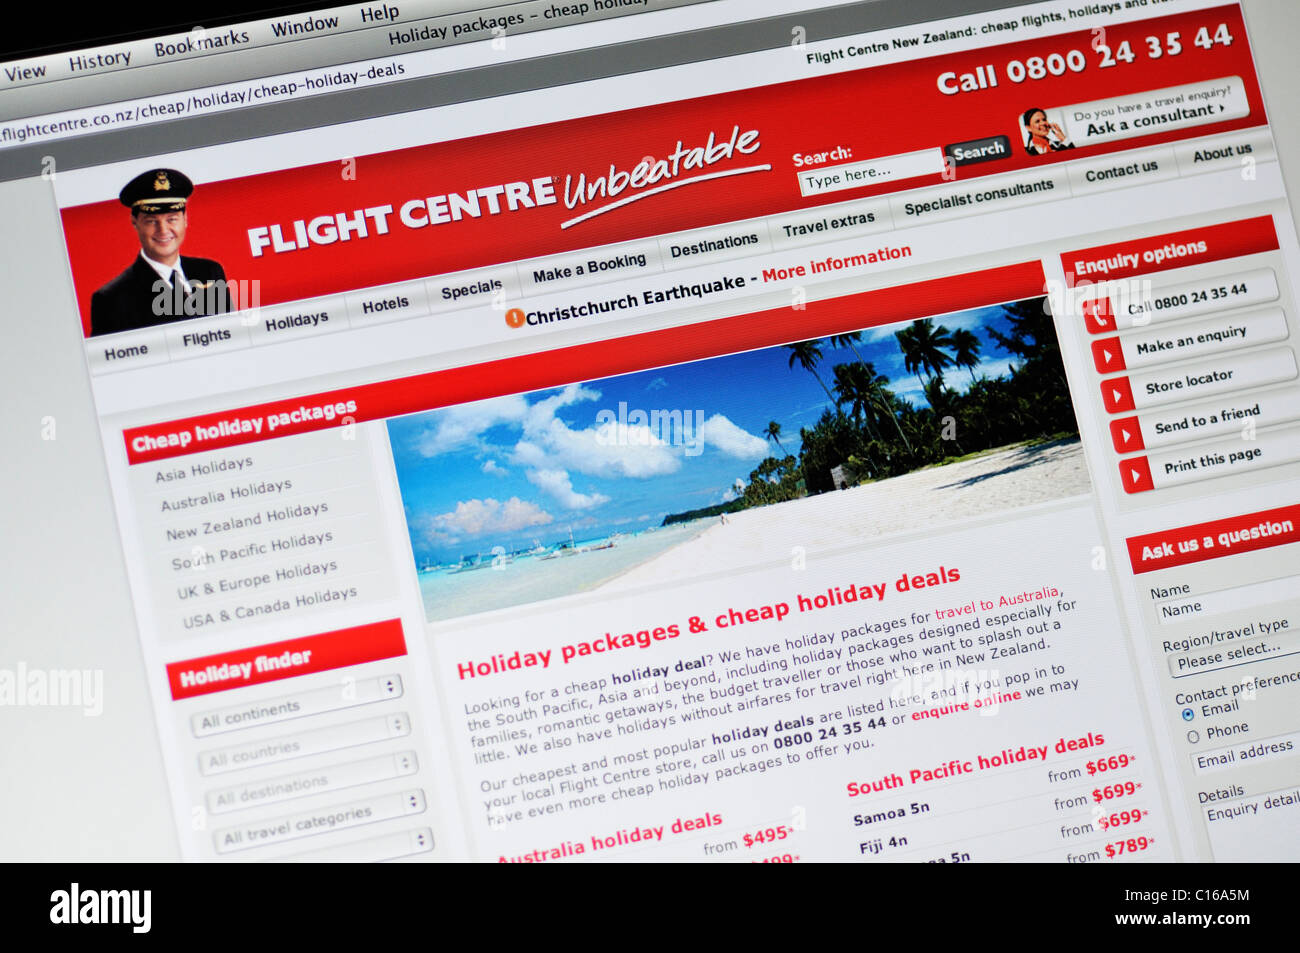 Flight Centre Website Travel Bargains Hot Deals Booking - Cruise packages with airfare